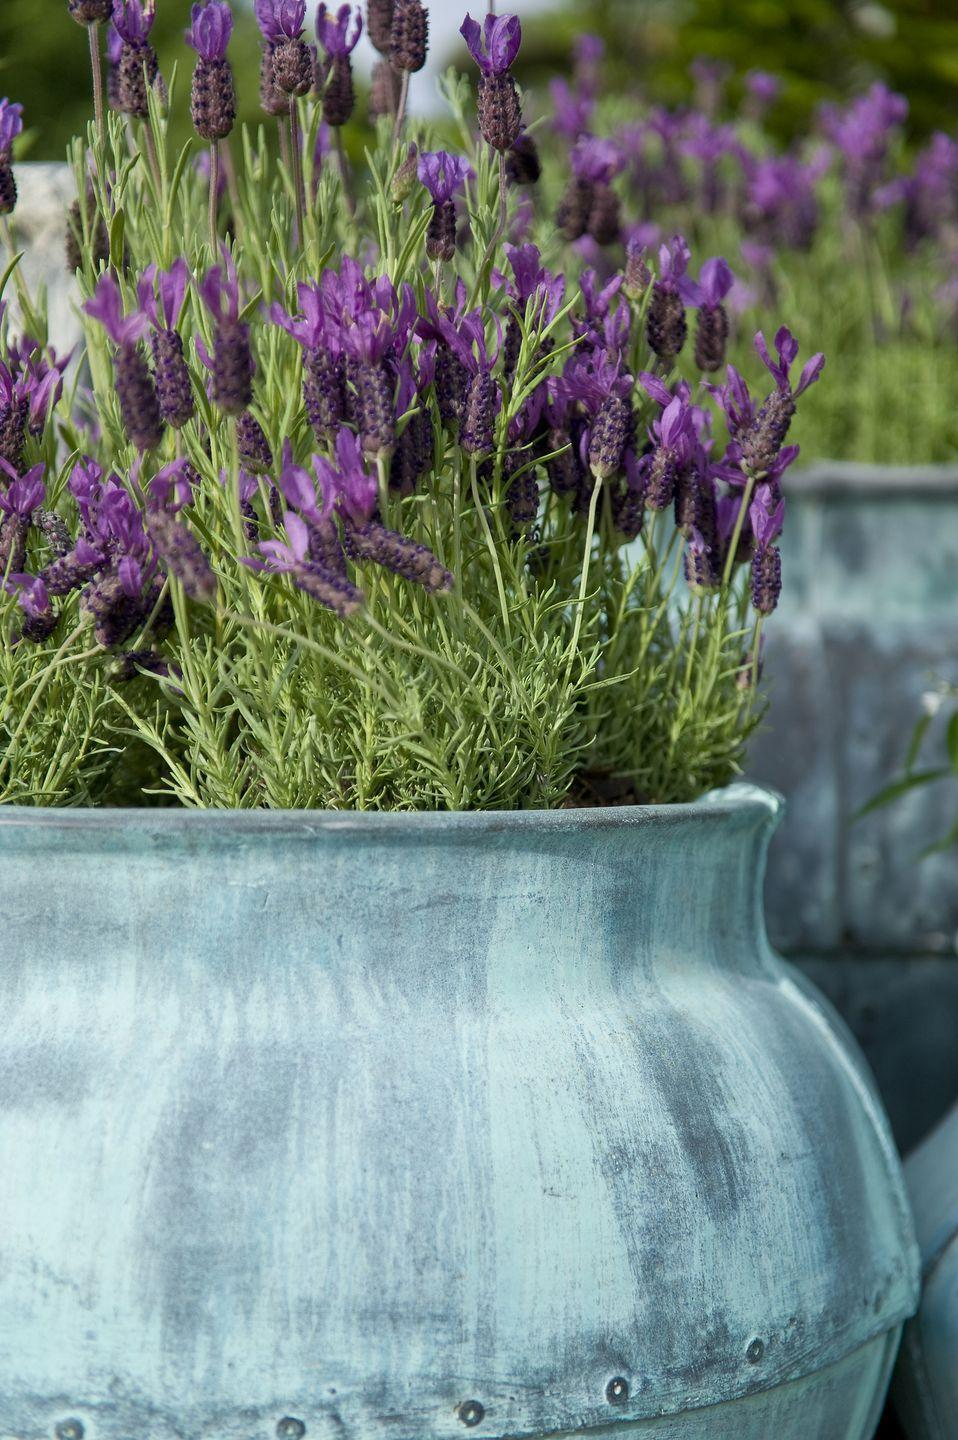 "<p>These hardy plants with silvery foliage and deep purple-blue flowers create a sense of romantic charm. And they smell amazing! Plant these perennials in pretty pots or baskets and place near seating areas so you can run your hands over the flowers to release their fragrance. Lavender needs full sun.</p><p><a class=""link rapid-noclick-resp"" href=""https://www.amazon.com/AMERICAN-PLANT-EXCHANGE-English-Lavender/dp/B083PKNWZ4/ref=sr_1_1_sspa?tag=syn-yahoo-20&ascsubtag=%5Bartid%7C10050.g.30420939%5Bsrc%7Cyahoo-us"" rel=""nofollow noopener"" target=""_blank"" data-ylk=""slk:SHOP LAVENDER"">SHOP LAVENDER</a></p>"